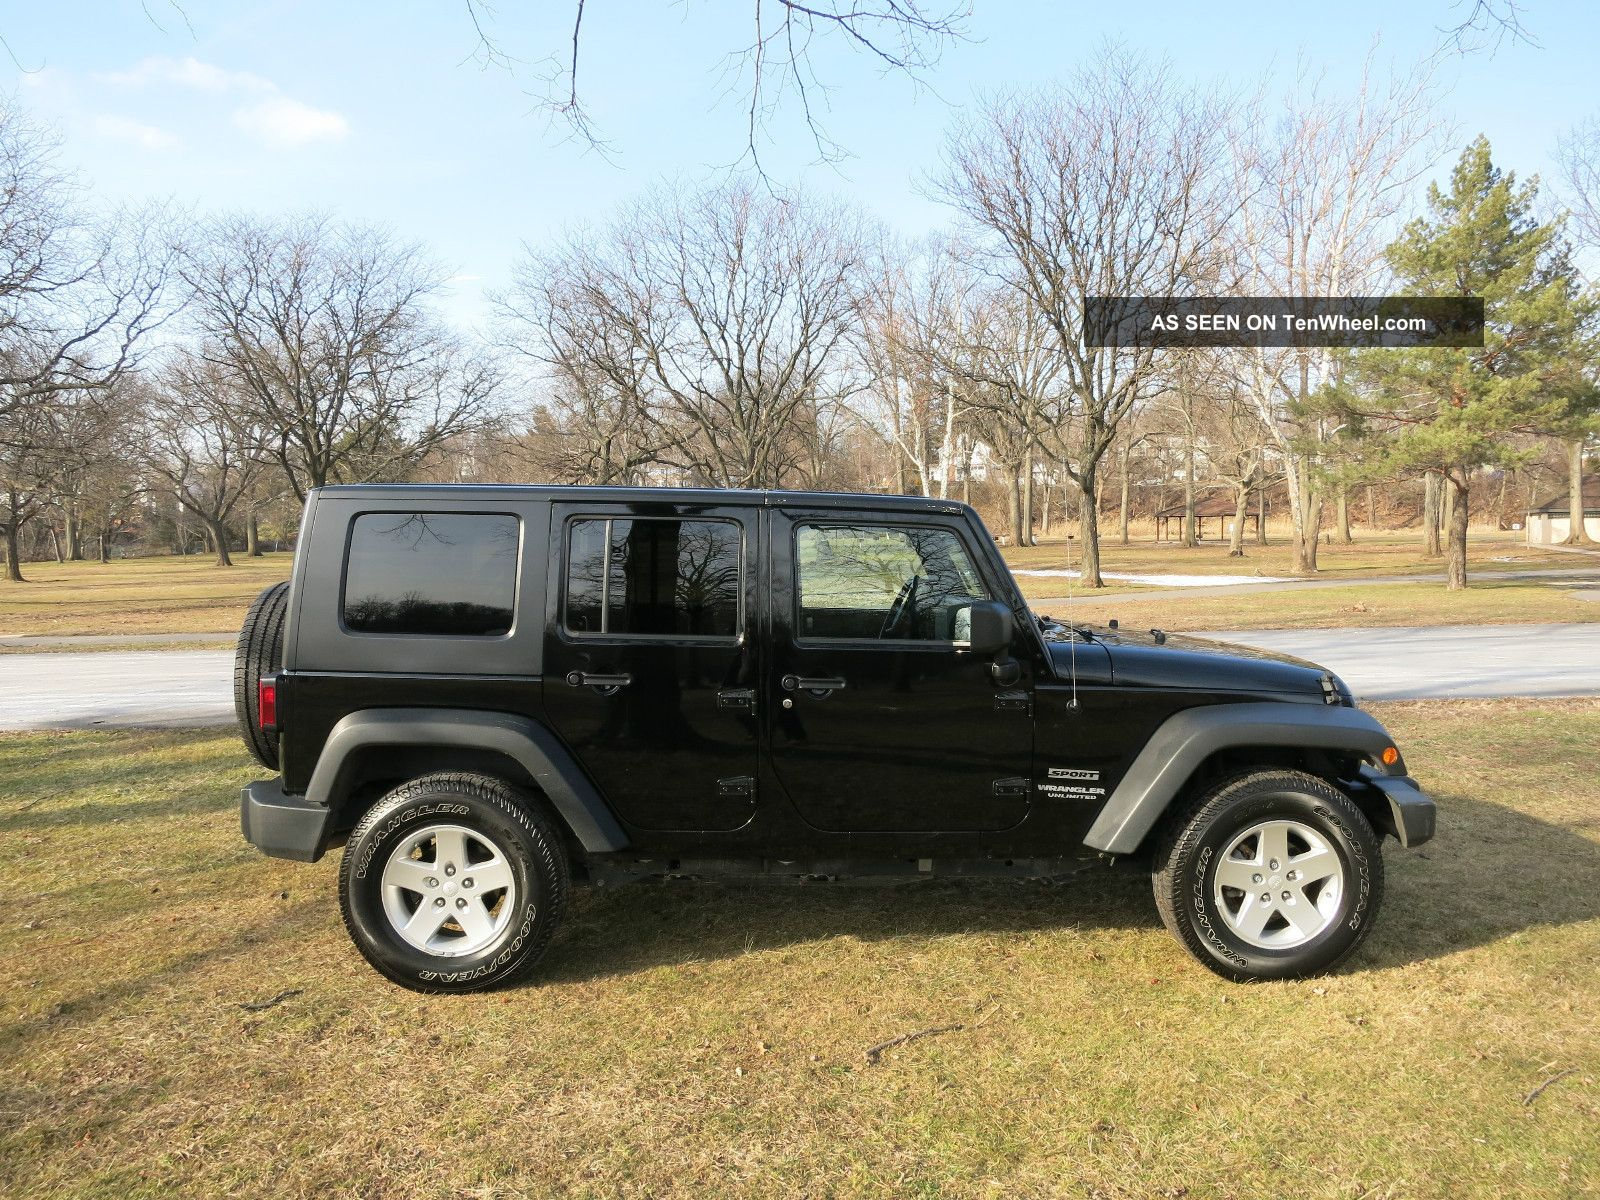 2010 jeep wrangler unlimited sport in hard top wrangler photo 3. Cars Review. Best American Auto & Cars Review